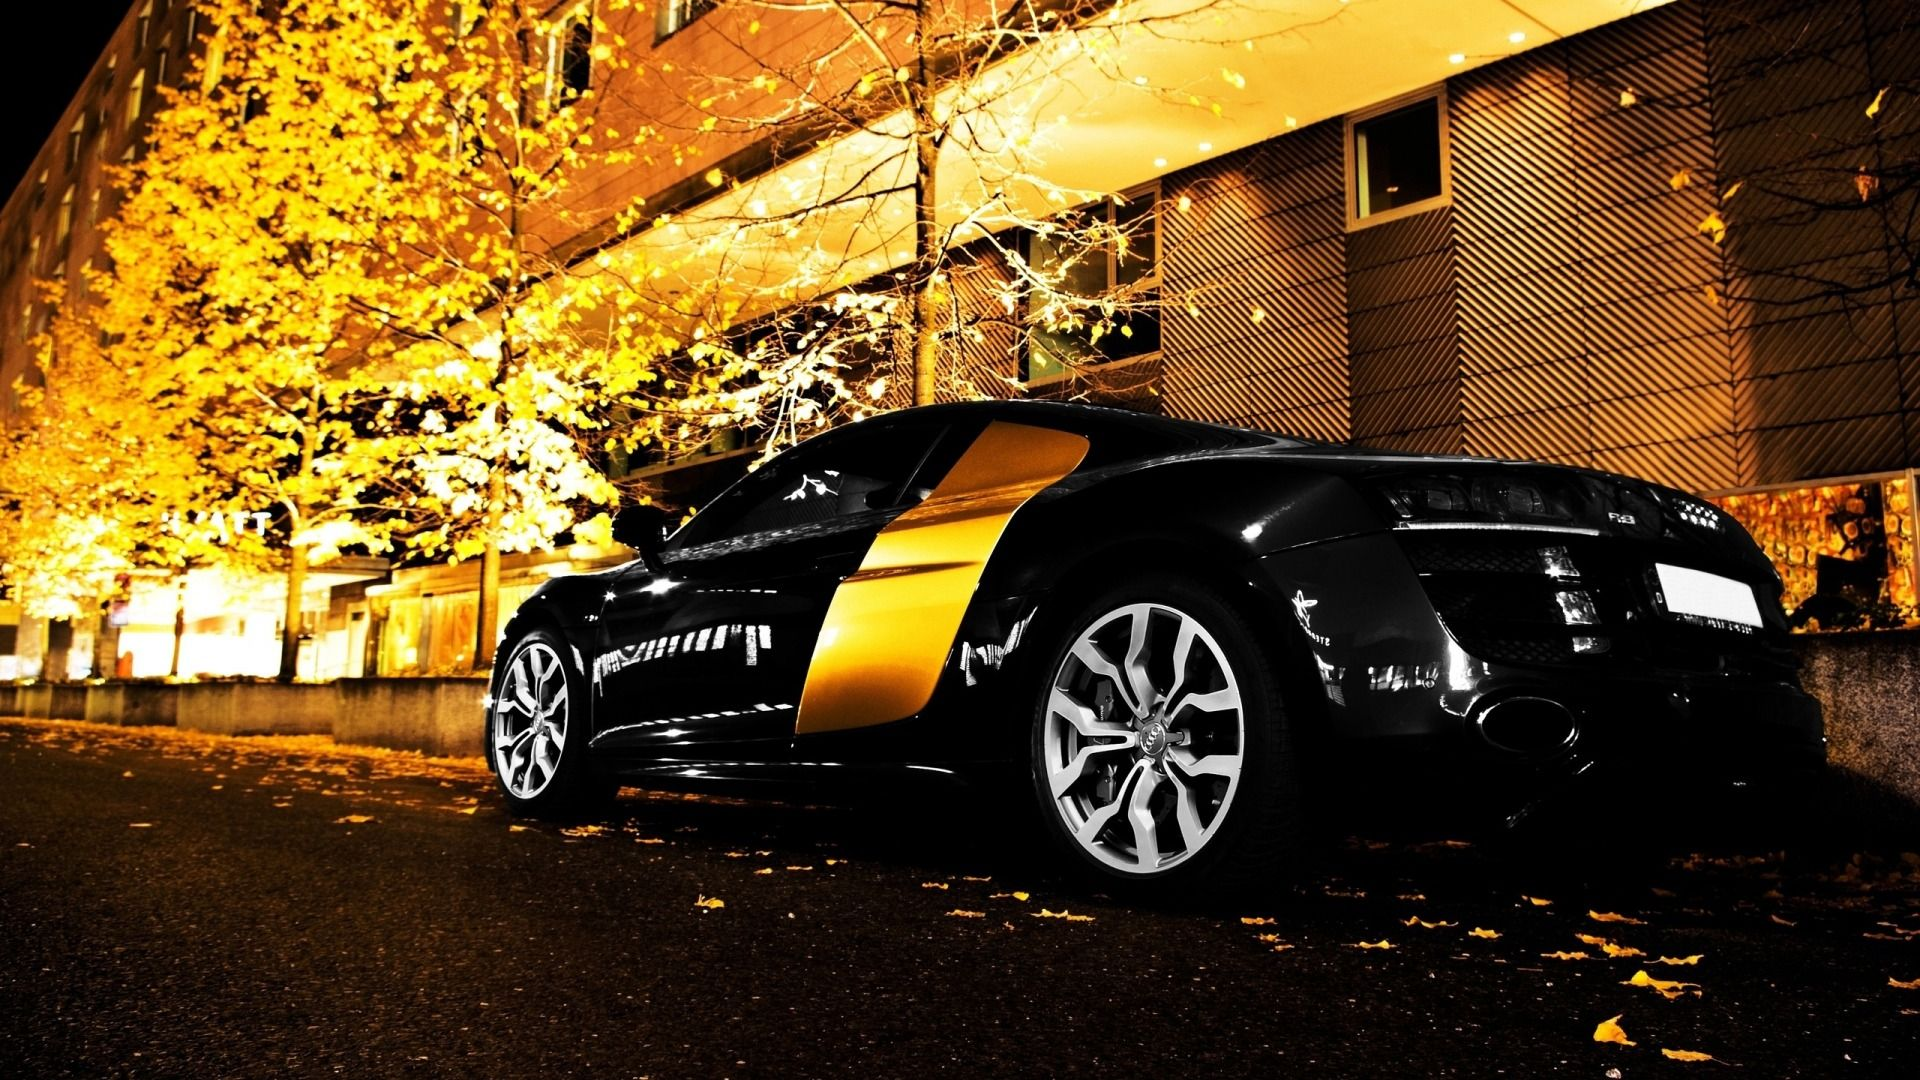 Hd wallpapers of cars - Awesome Audi R8 Sport Hd Wallpapers 1080p Cars